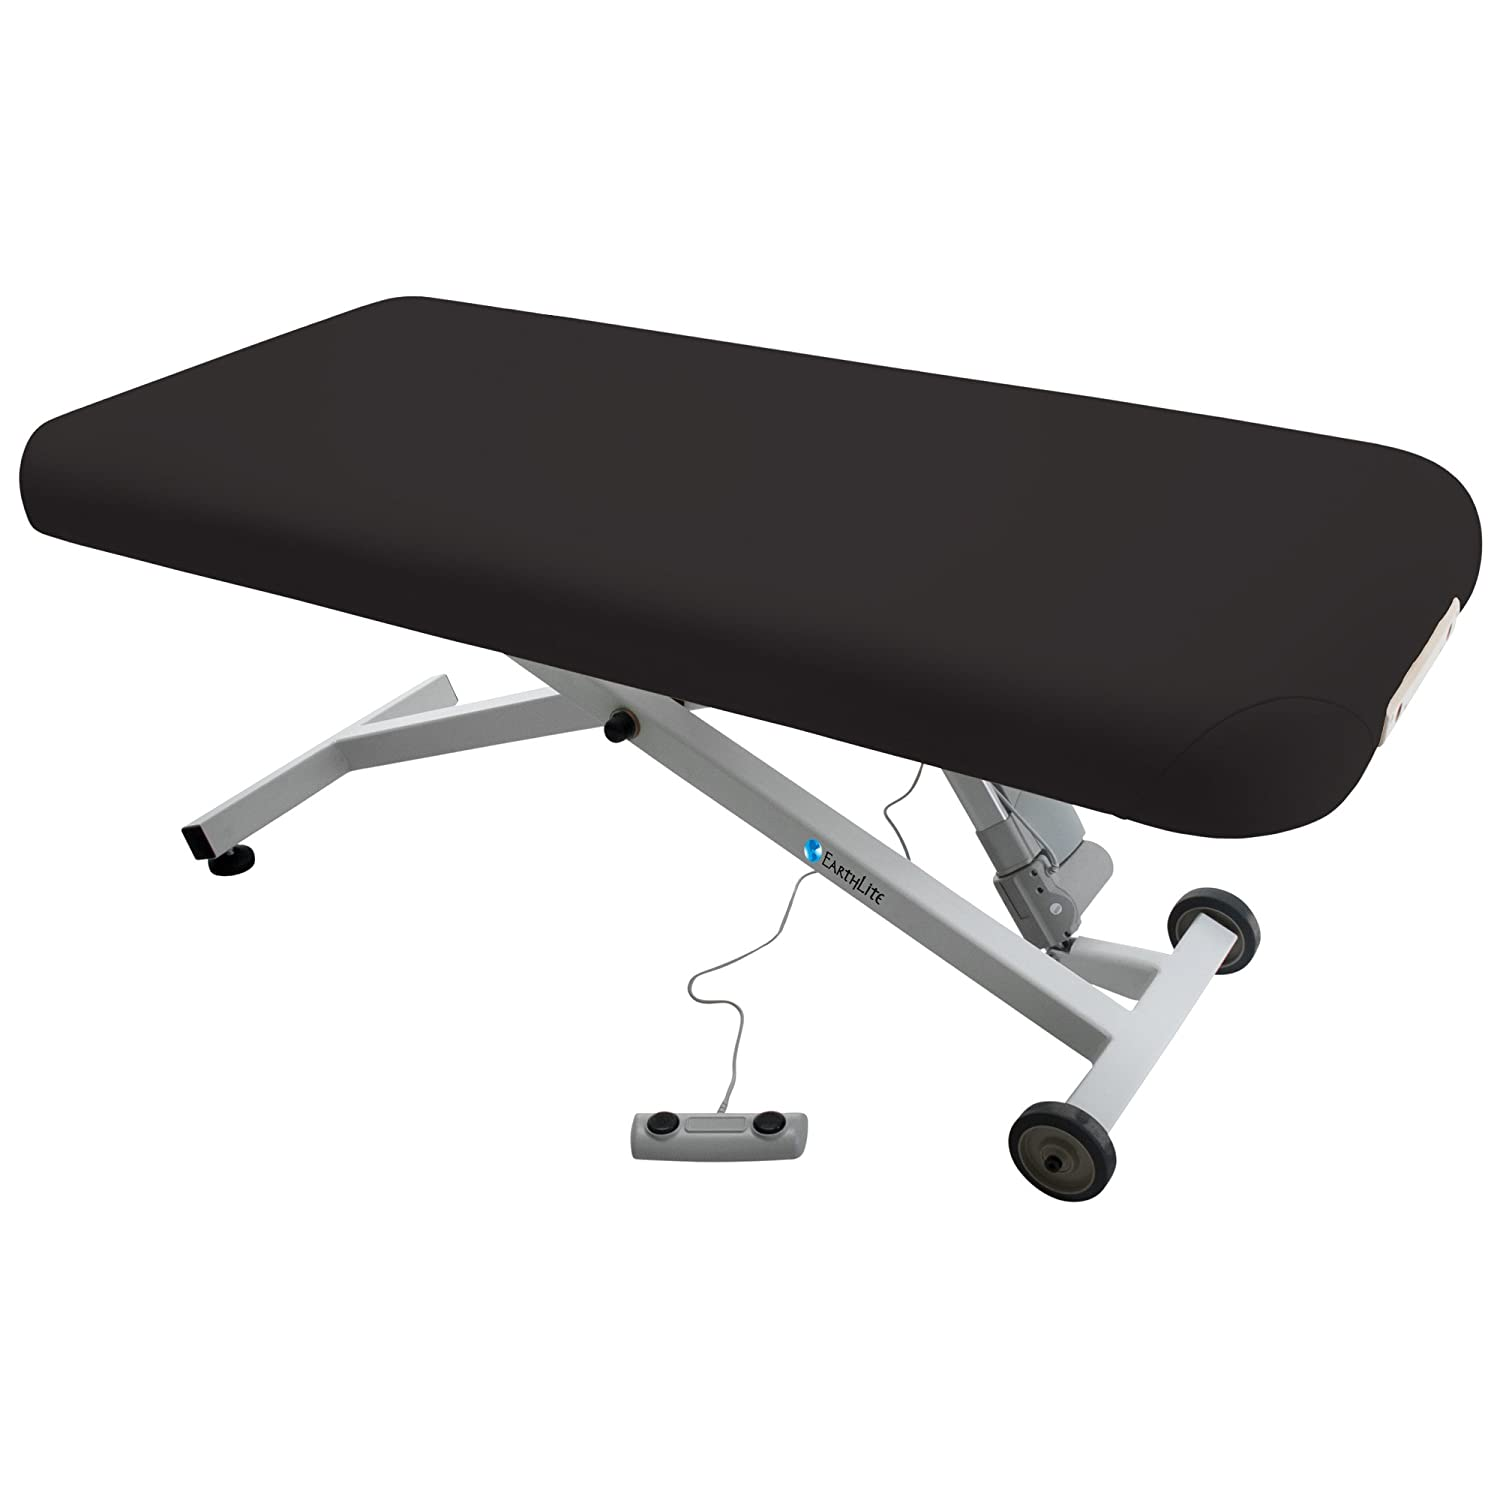 Peachy Earthlite Electric Massage Table Ellora The Quietest Most Popular Spa Lift Hydraulic Massage Table Made In Usa Customer Service In The Usa 28 Home Interior And Landscaping Ologienasavecom